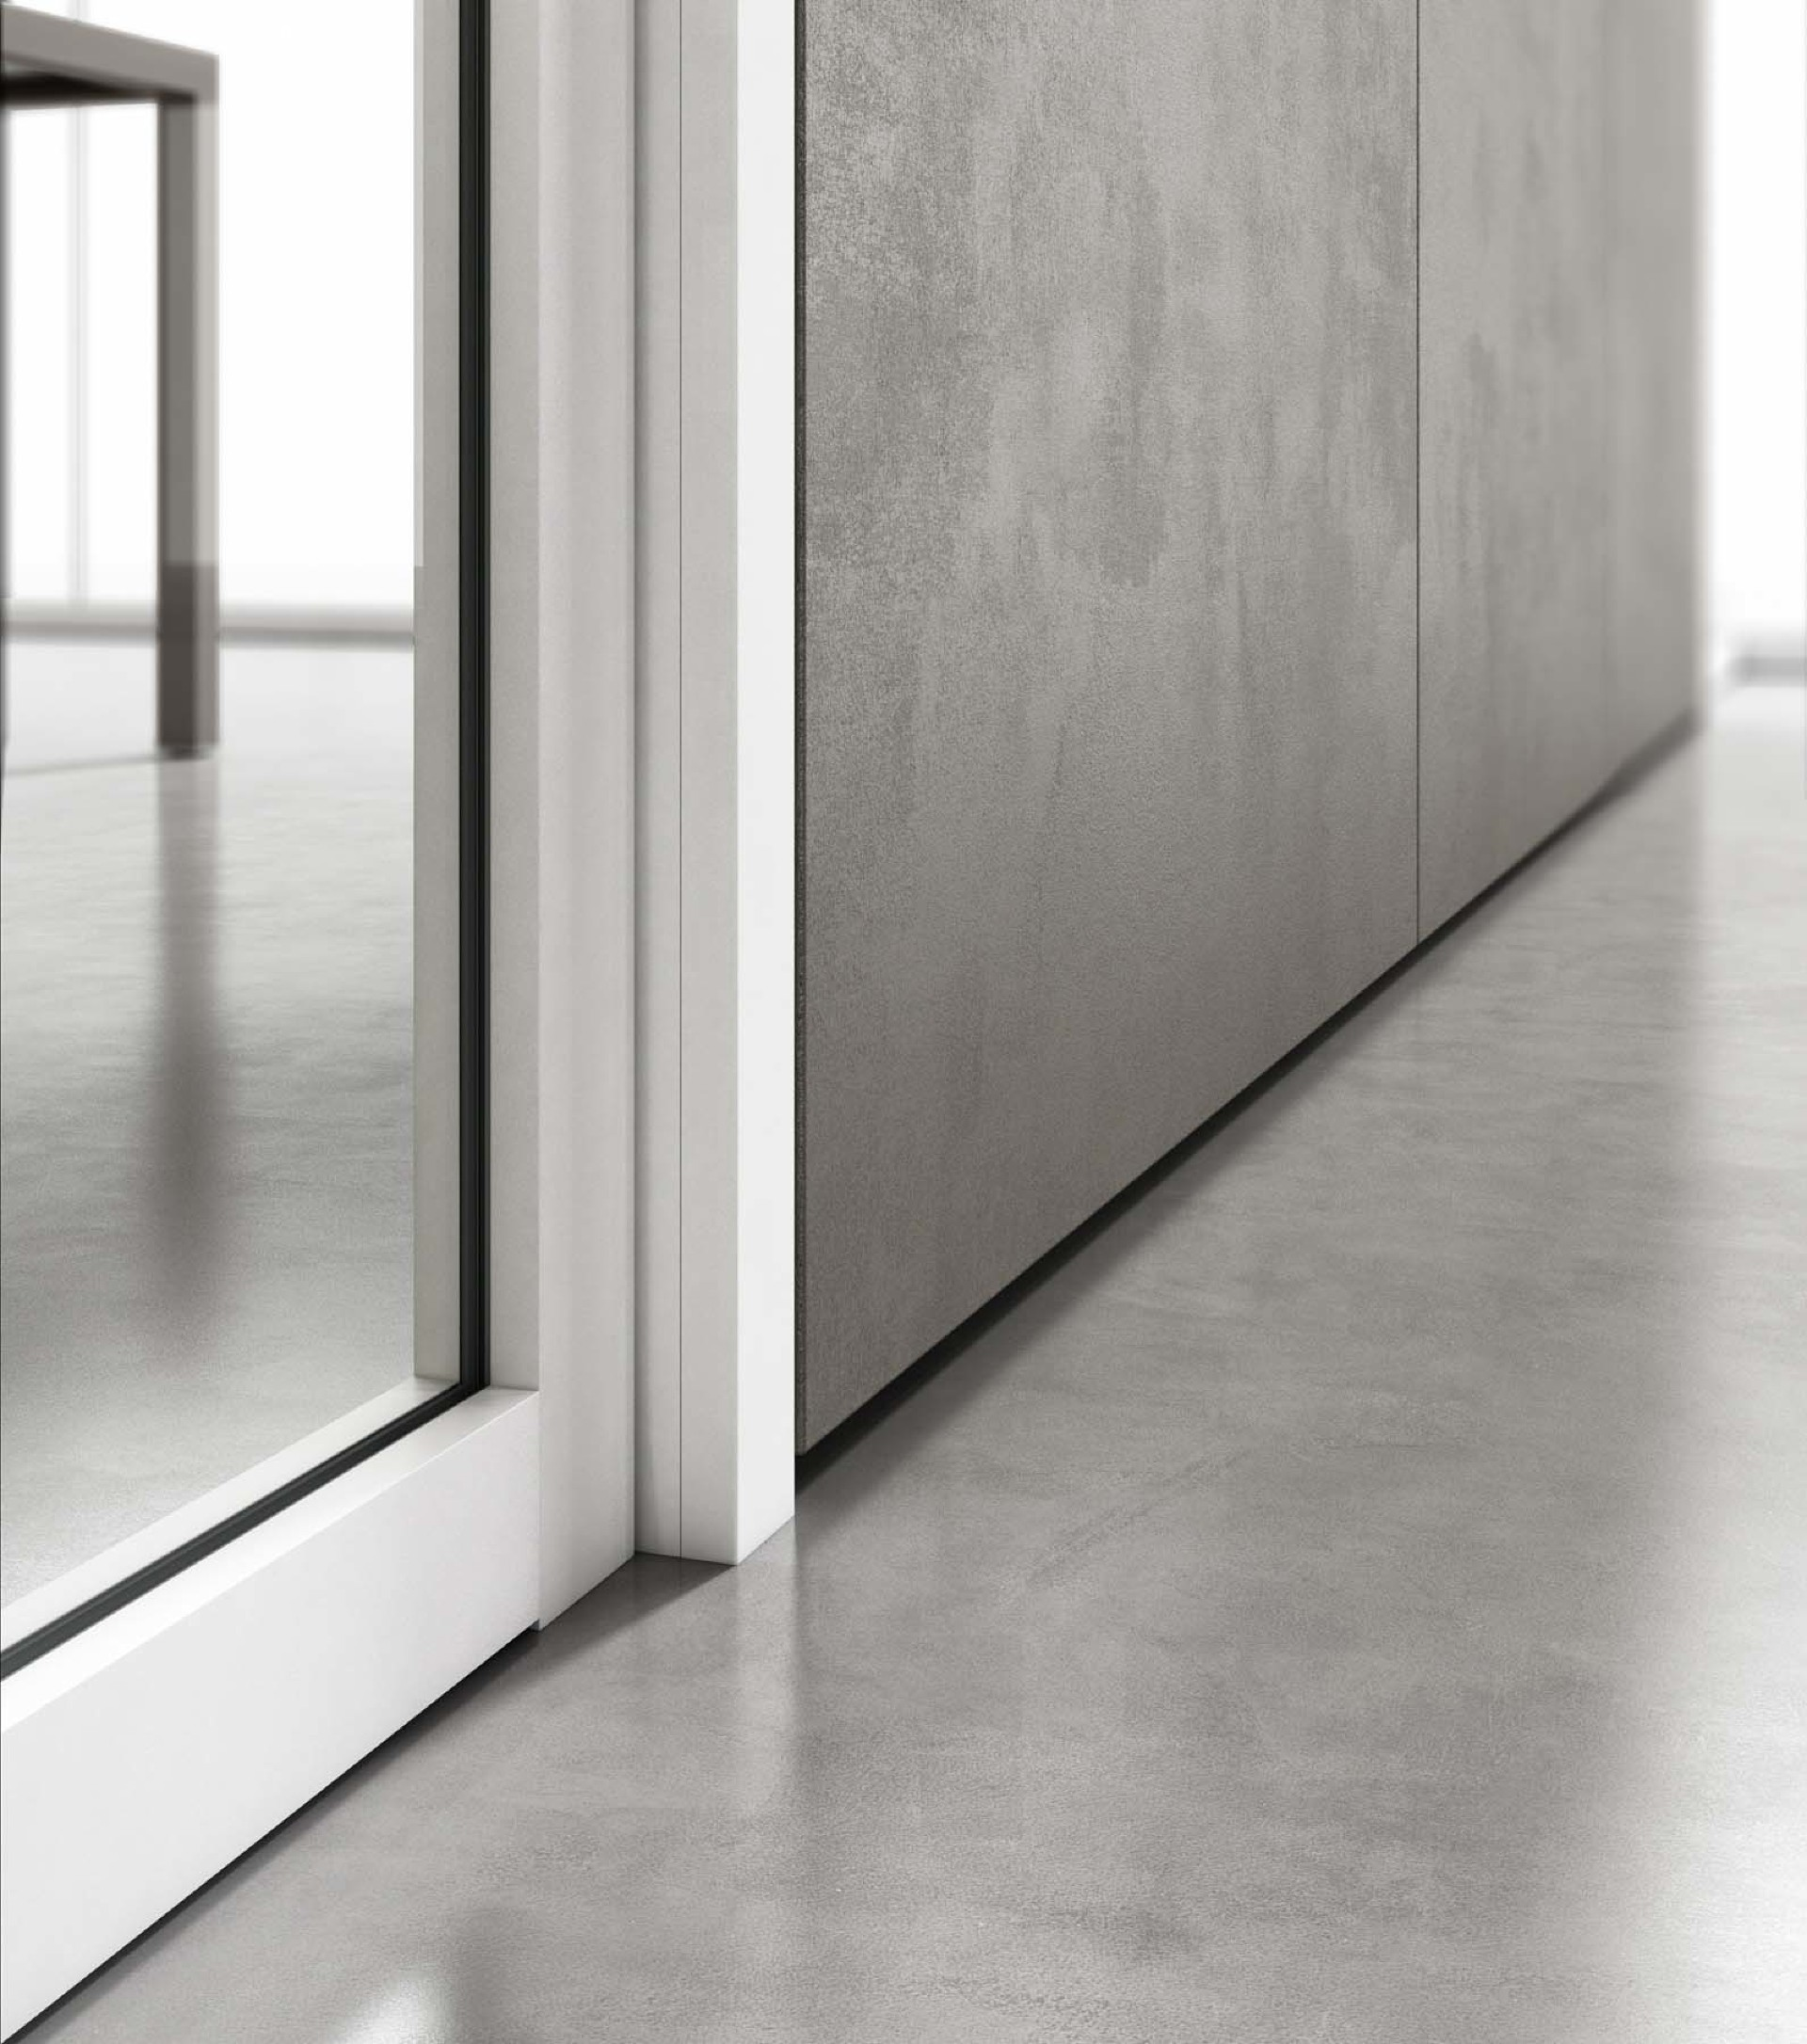 partition-wall-glass-detail.jpg